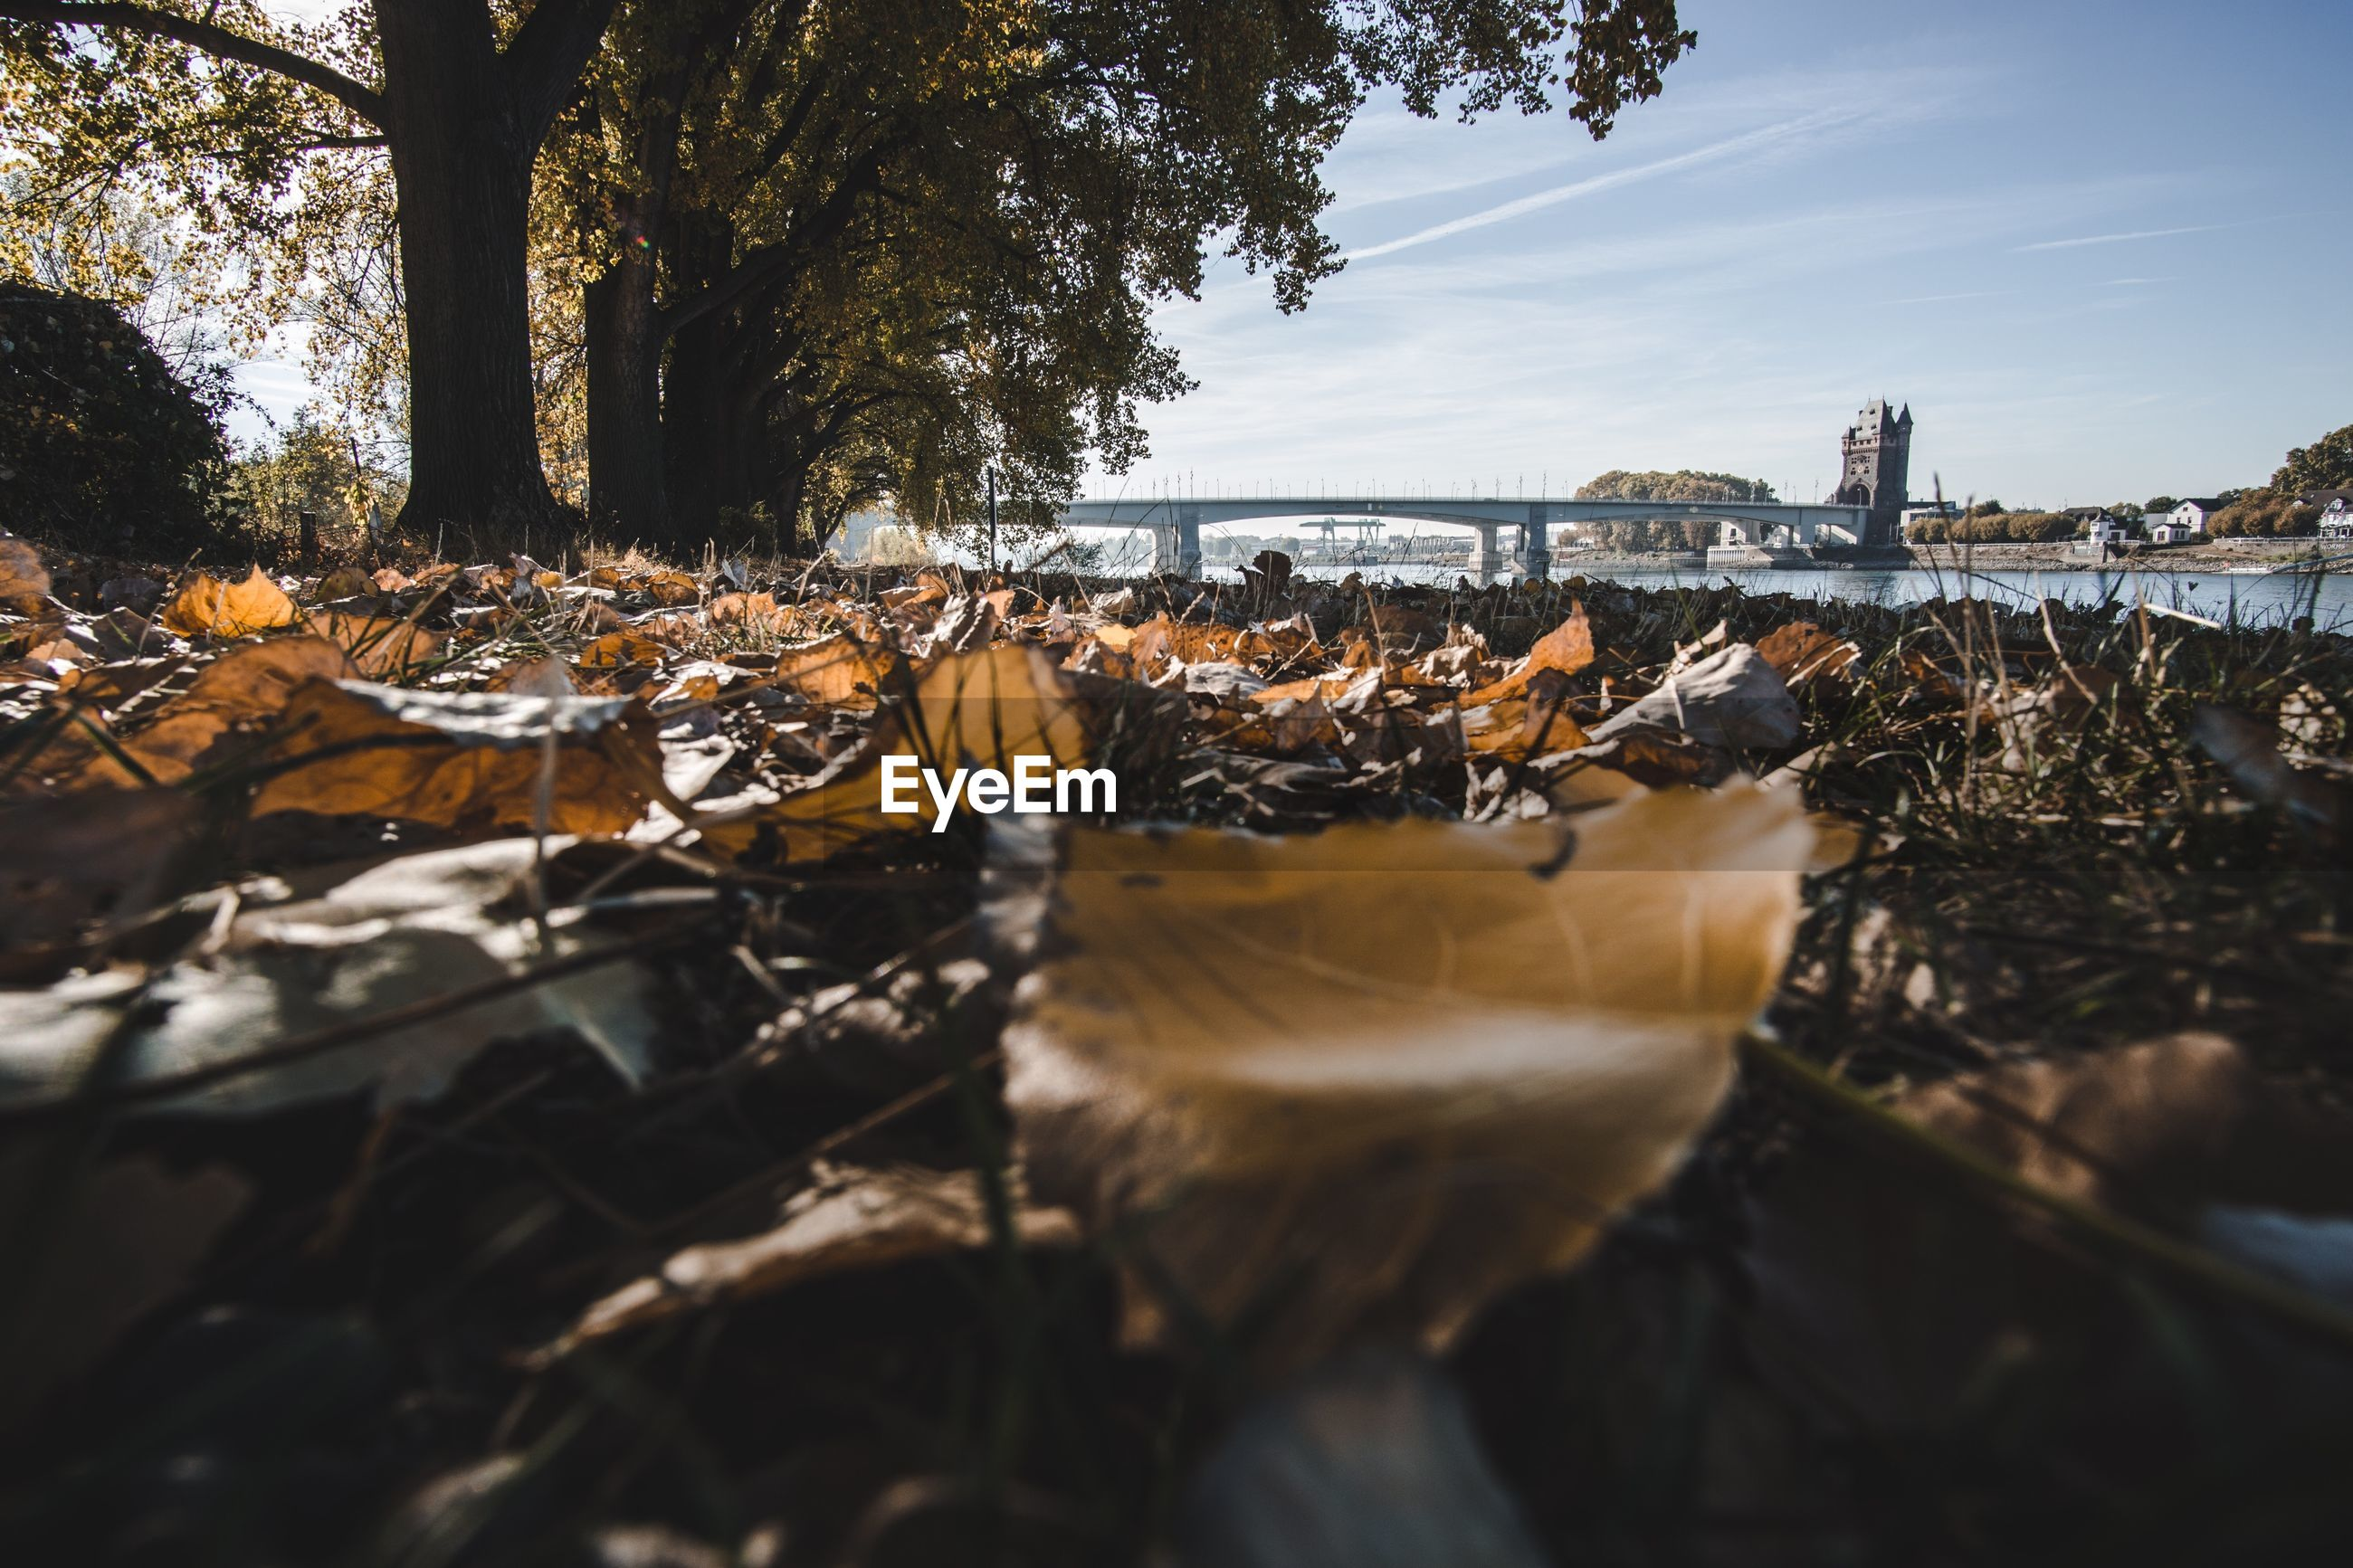 SURFACE LEVEL OF DRY LEAVES IN CITY